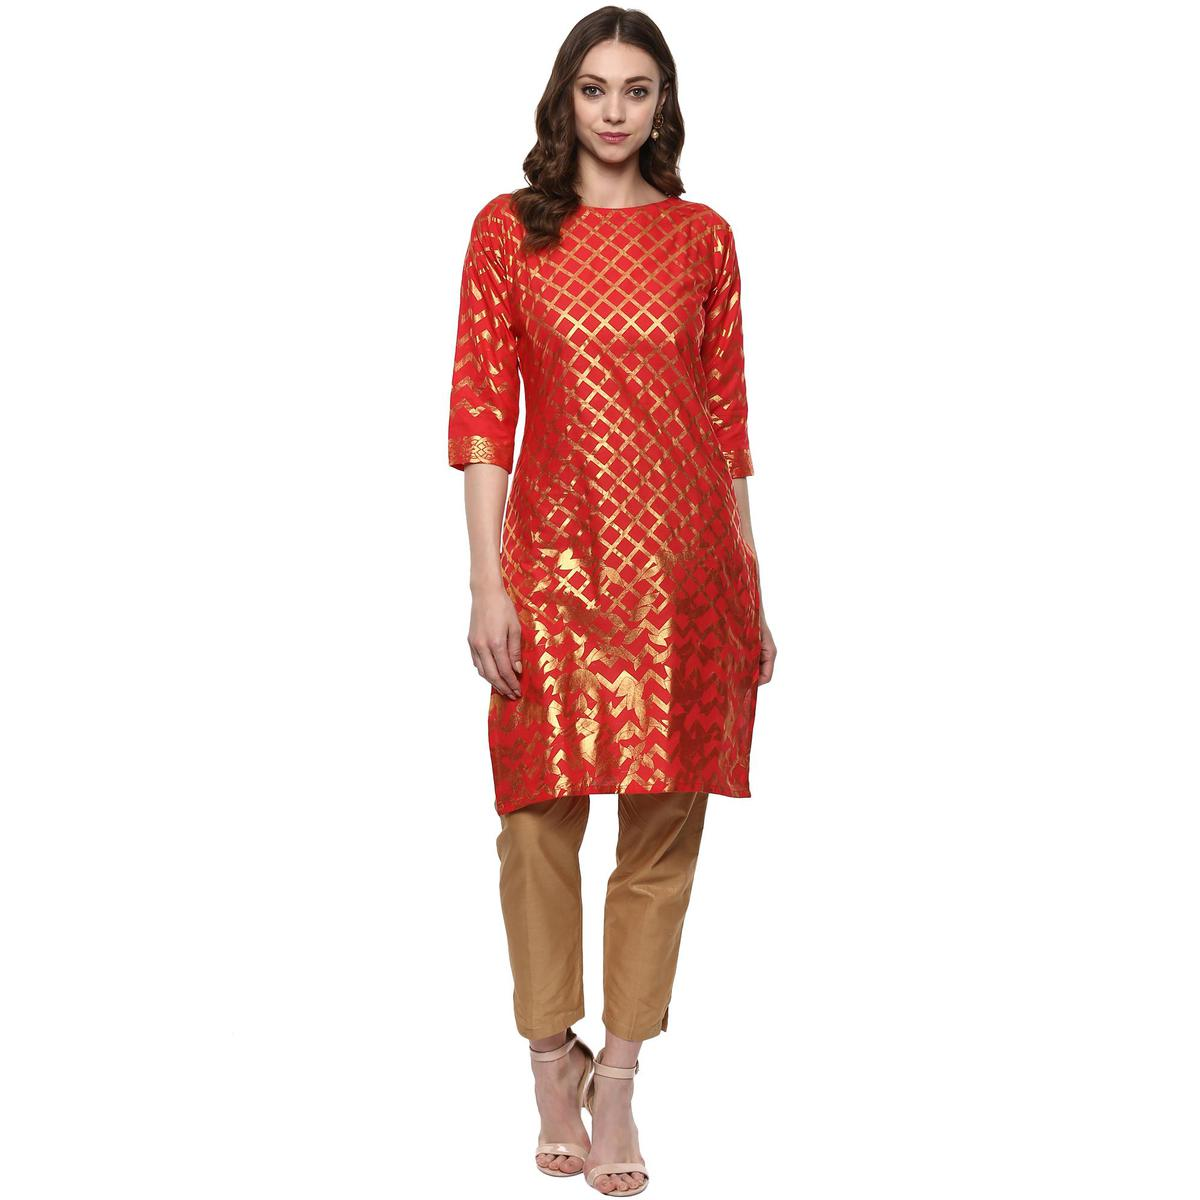 AHALYAA - Fiery Red Cotton Kurti with Metallic Gold Print